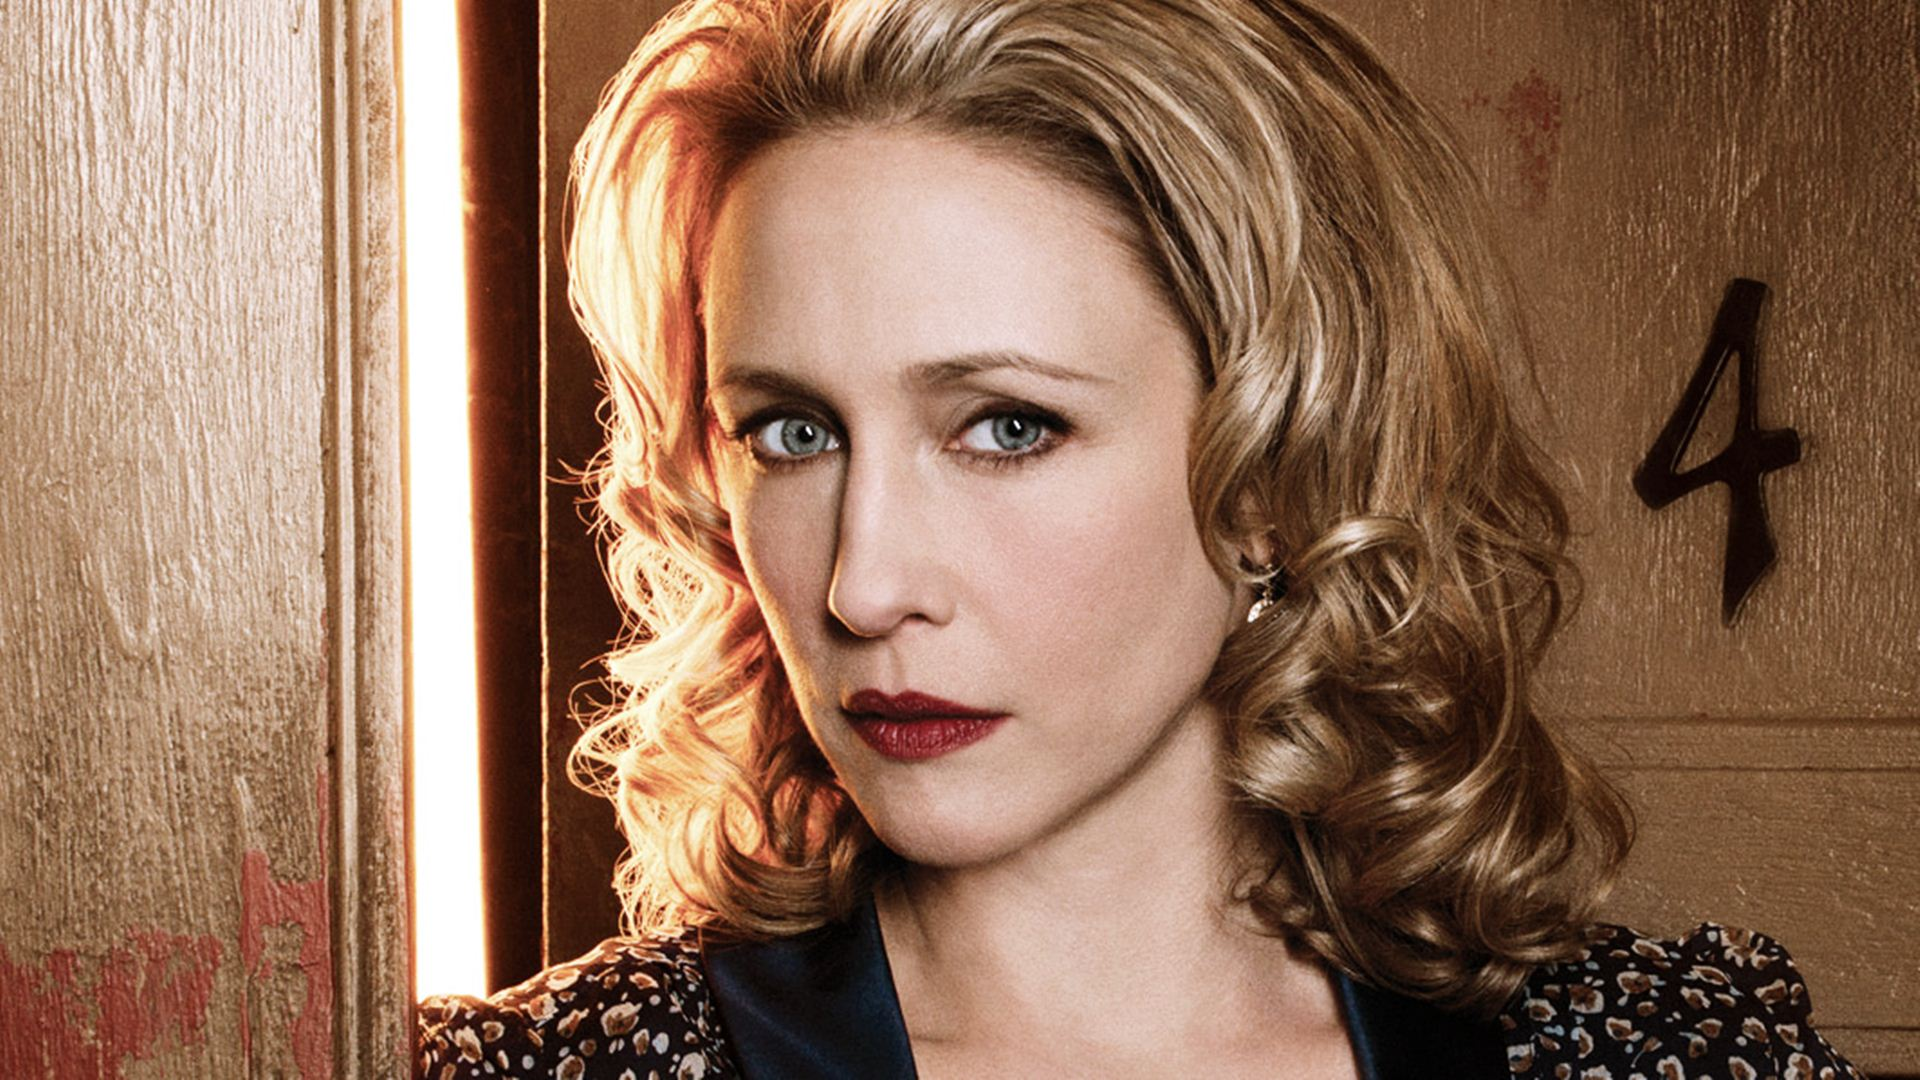 Vera Farmiga HD Wallpapers for desktop download